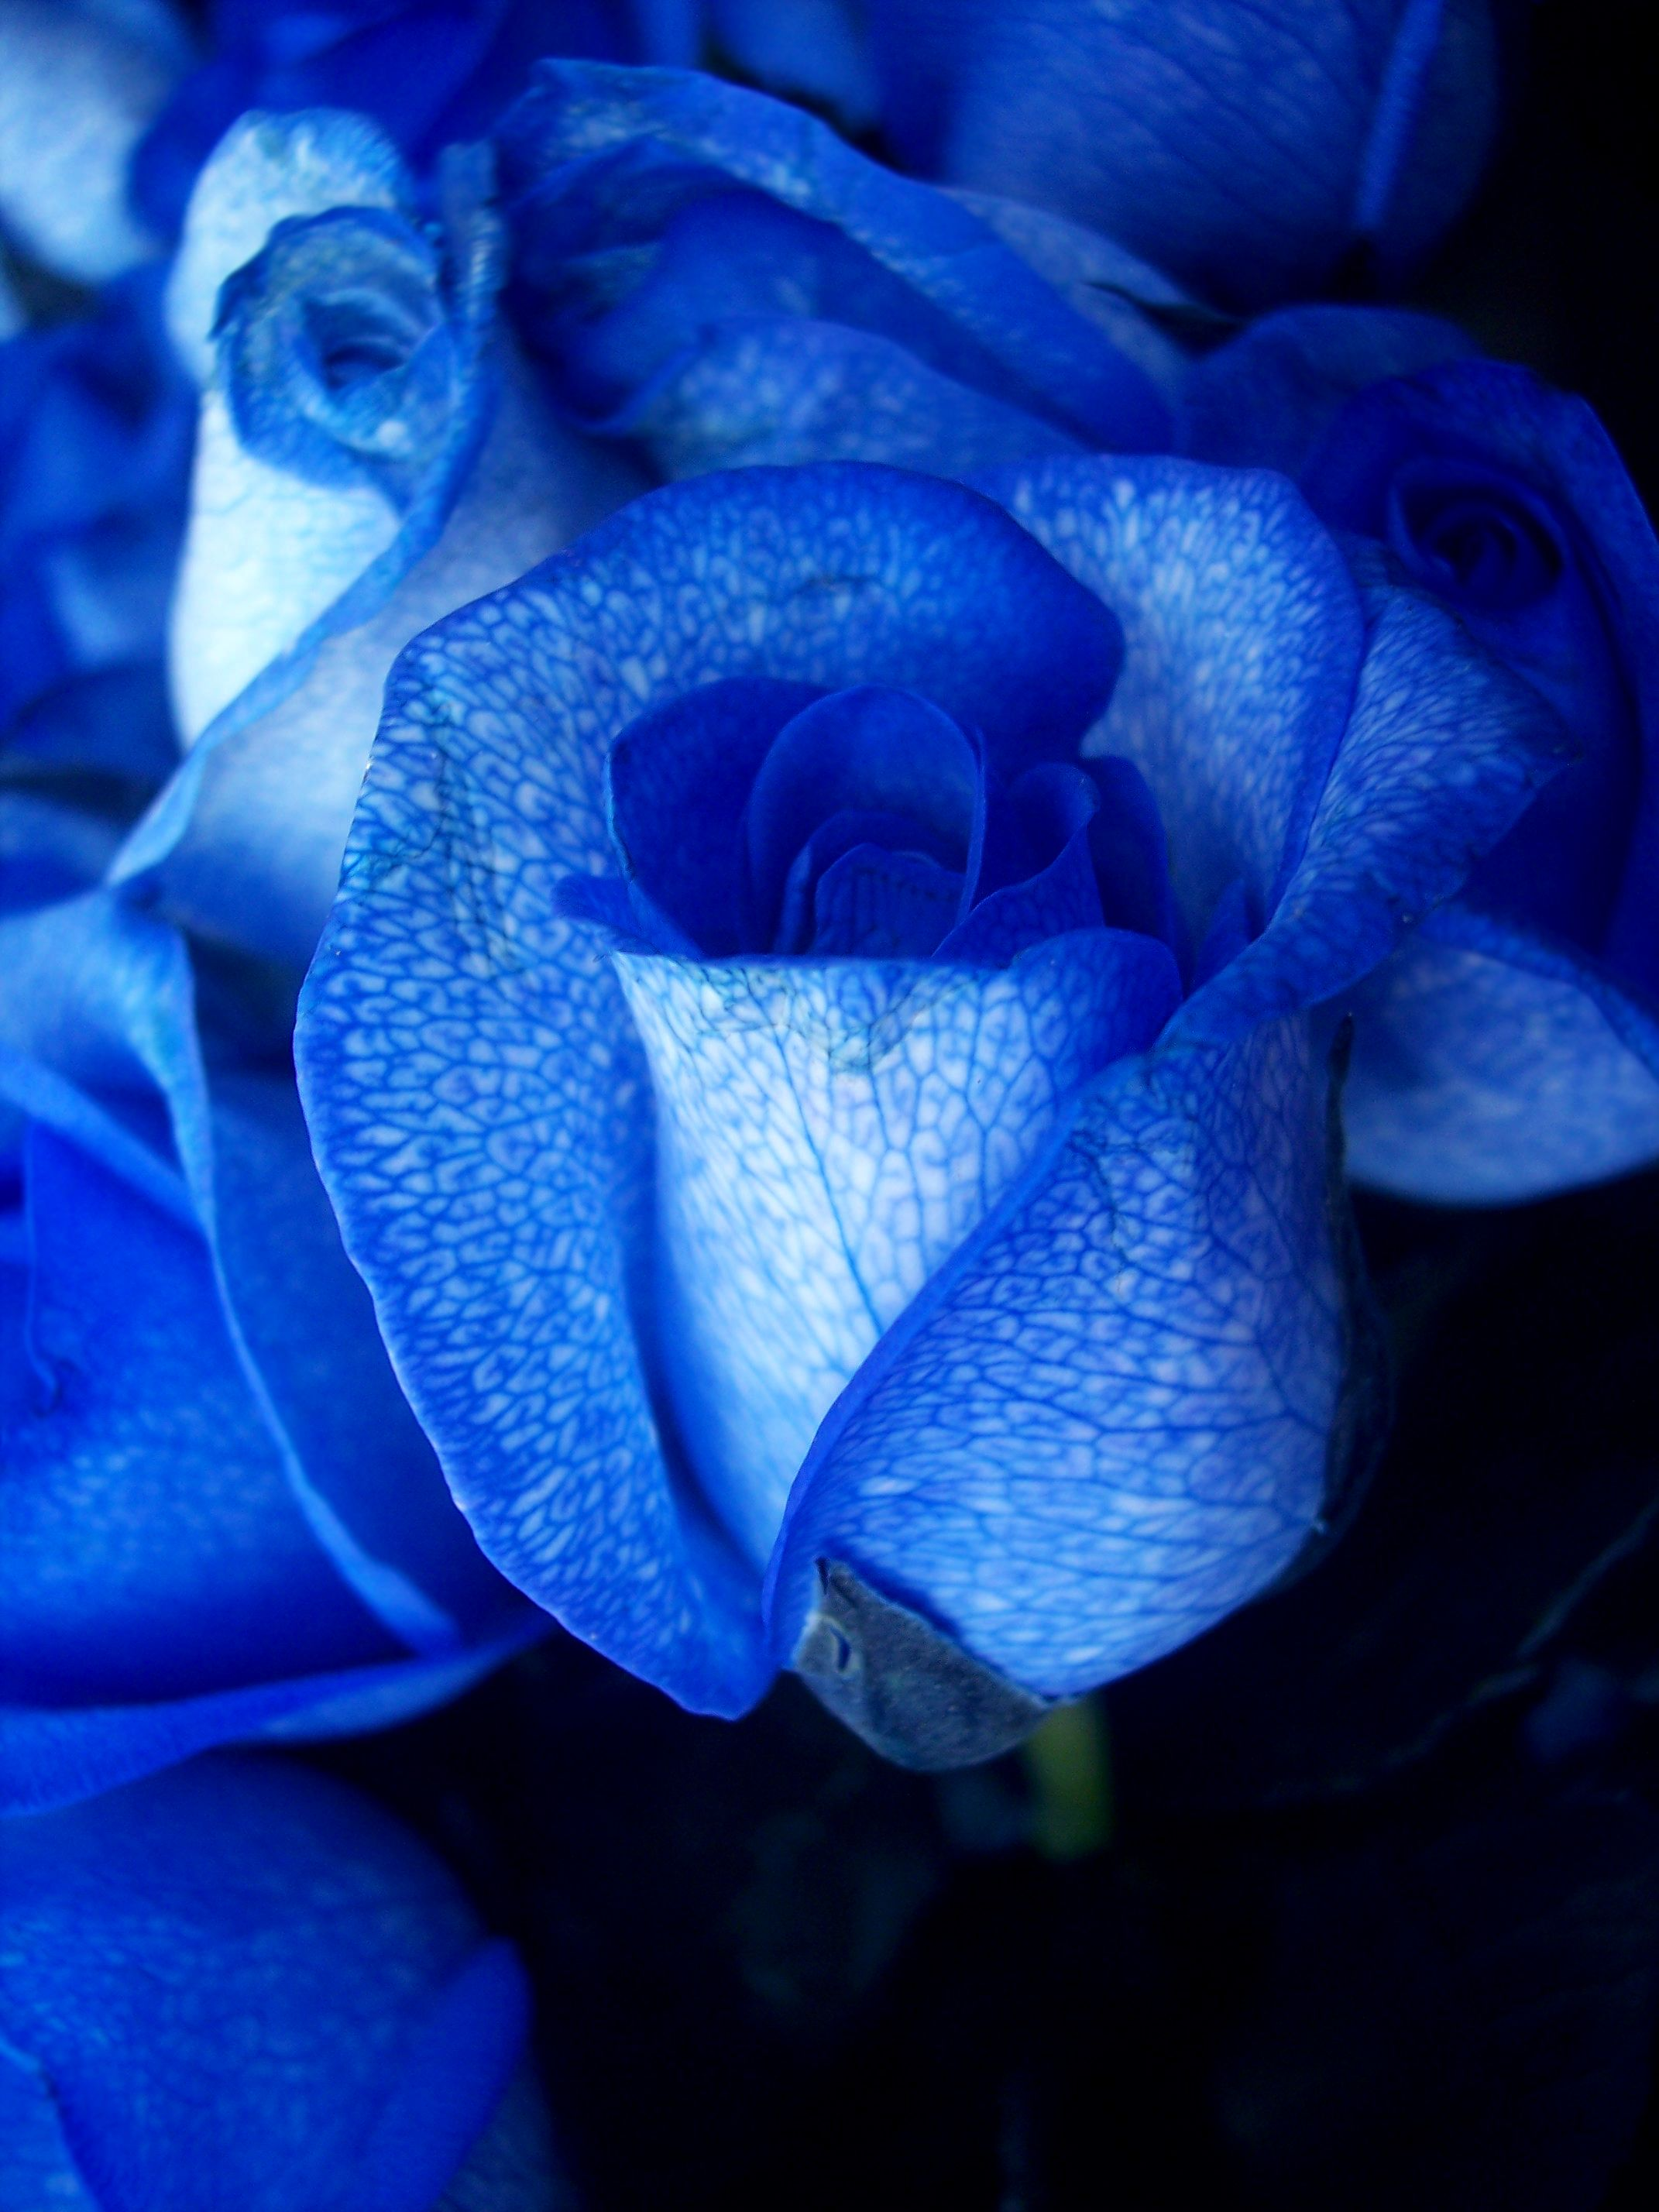 Get To Know Roses Roses Flowers Flowers Magazine Blue Roses Blue Flowers Hybrid Tea Roses